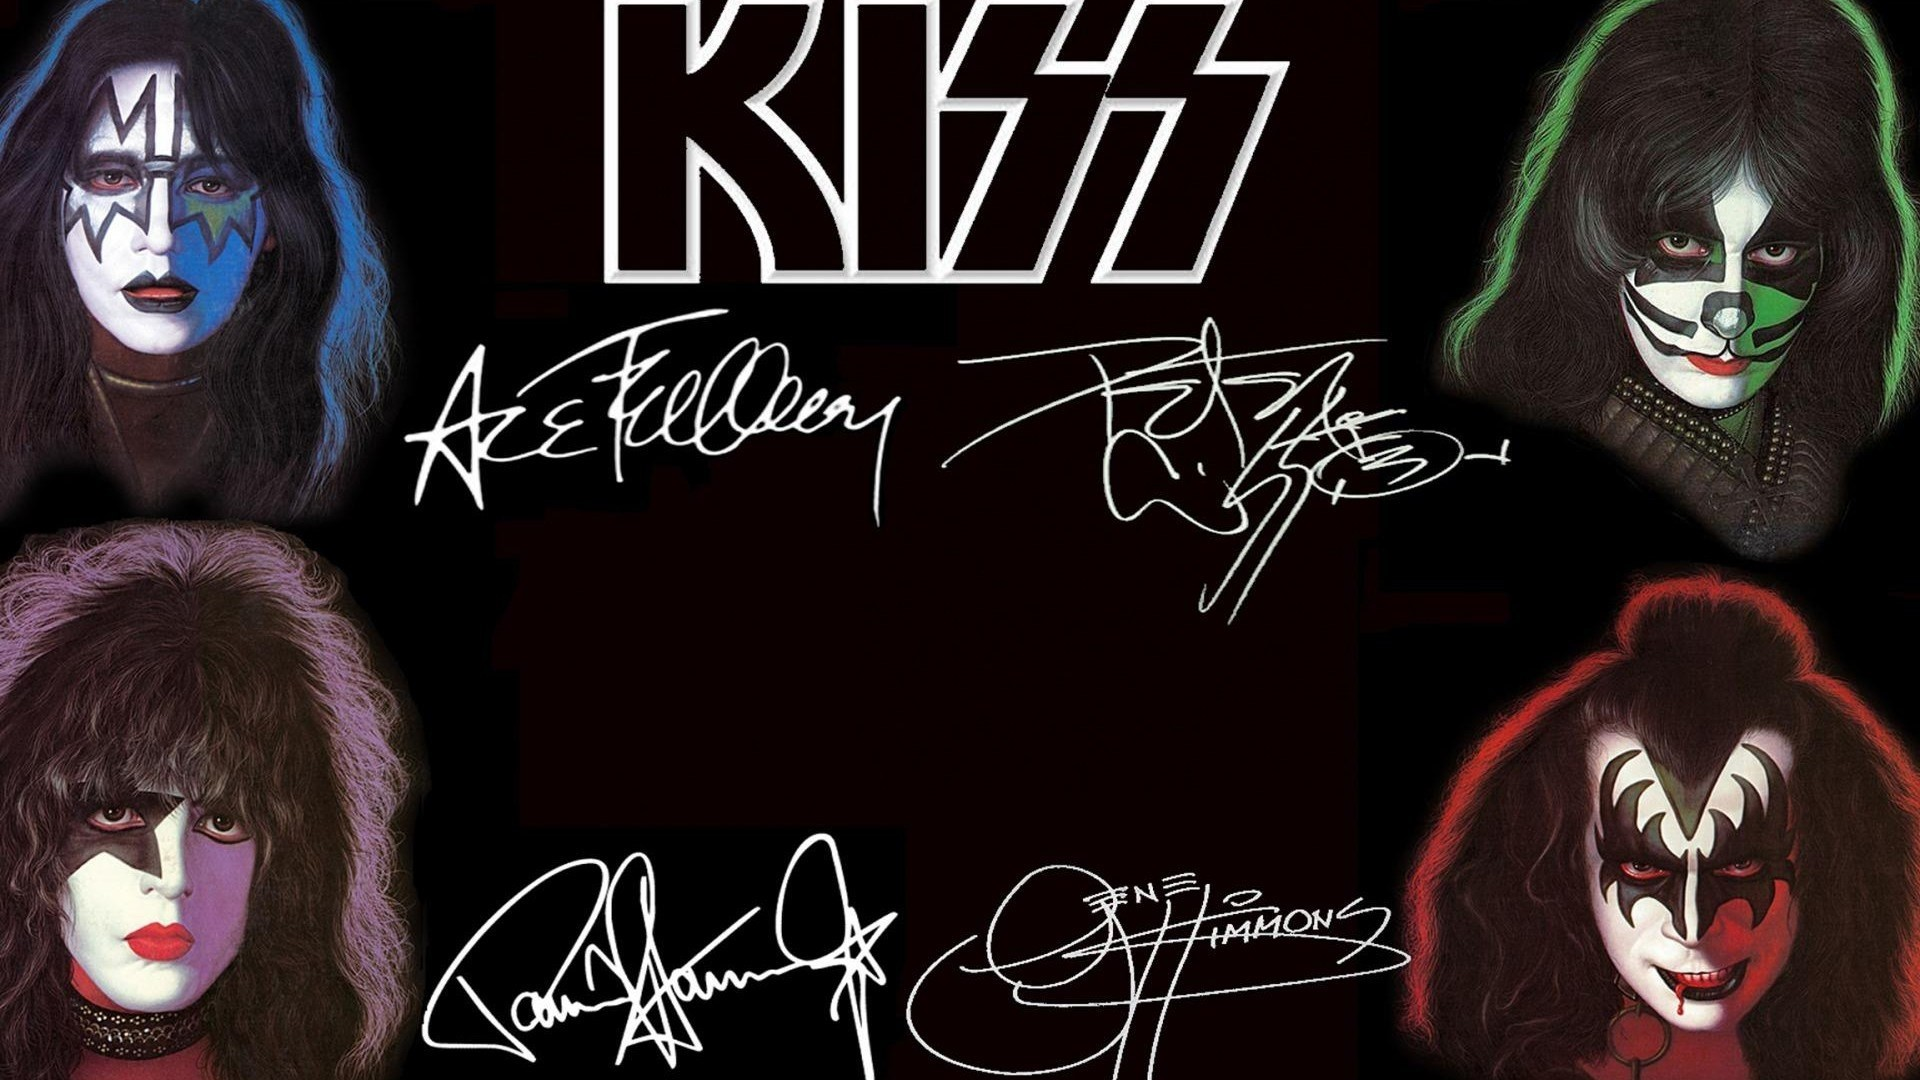 the original kiss ace frehley wallpaper download